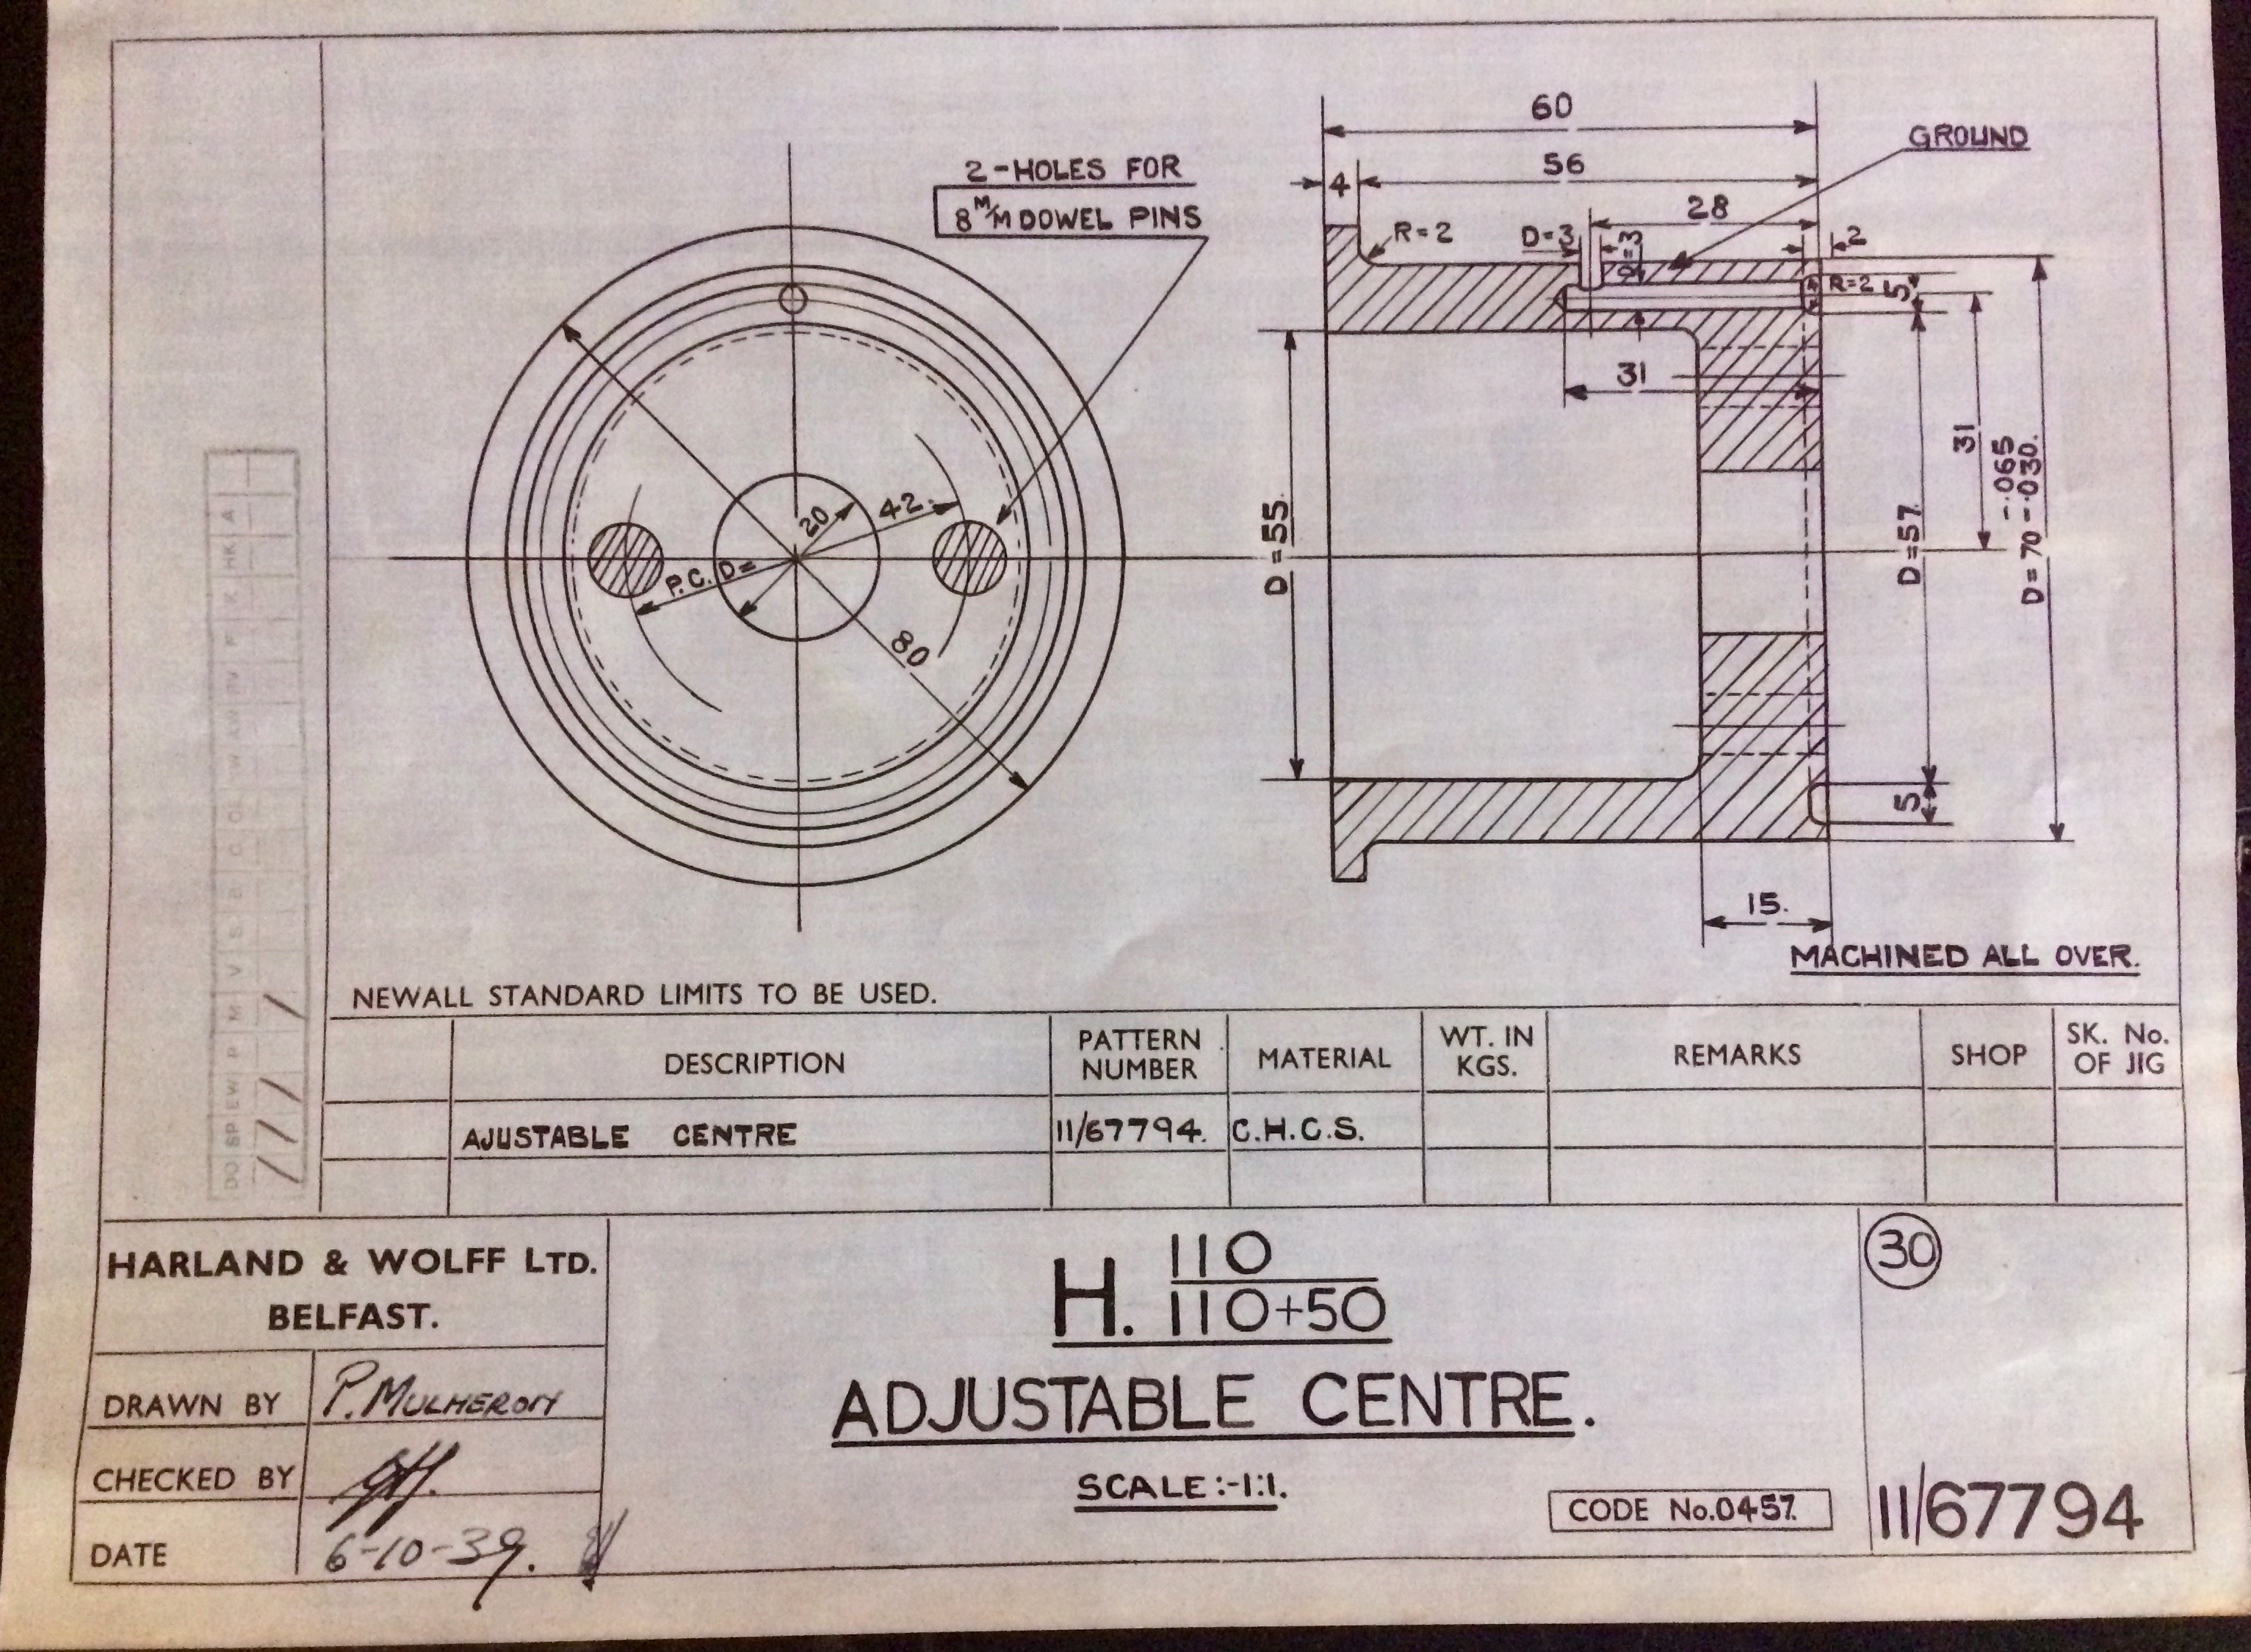 Harland & Wolff Engineering Drawing 34/11/67794